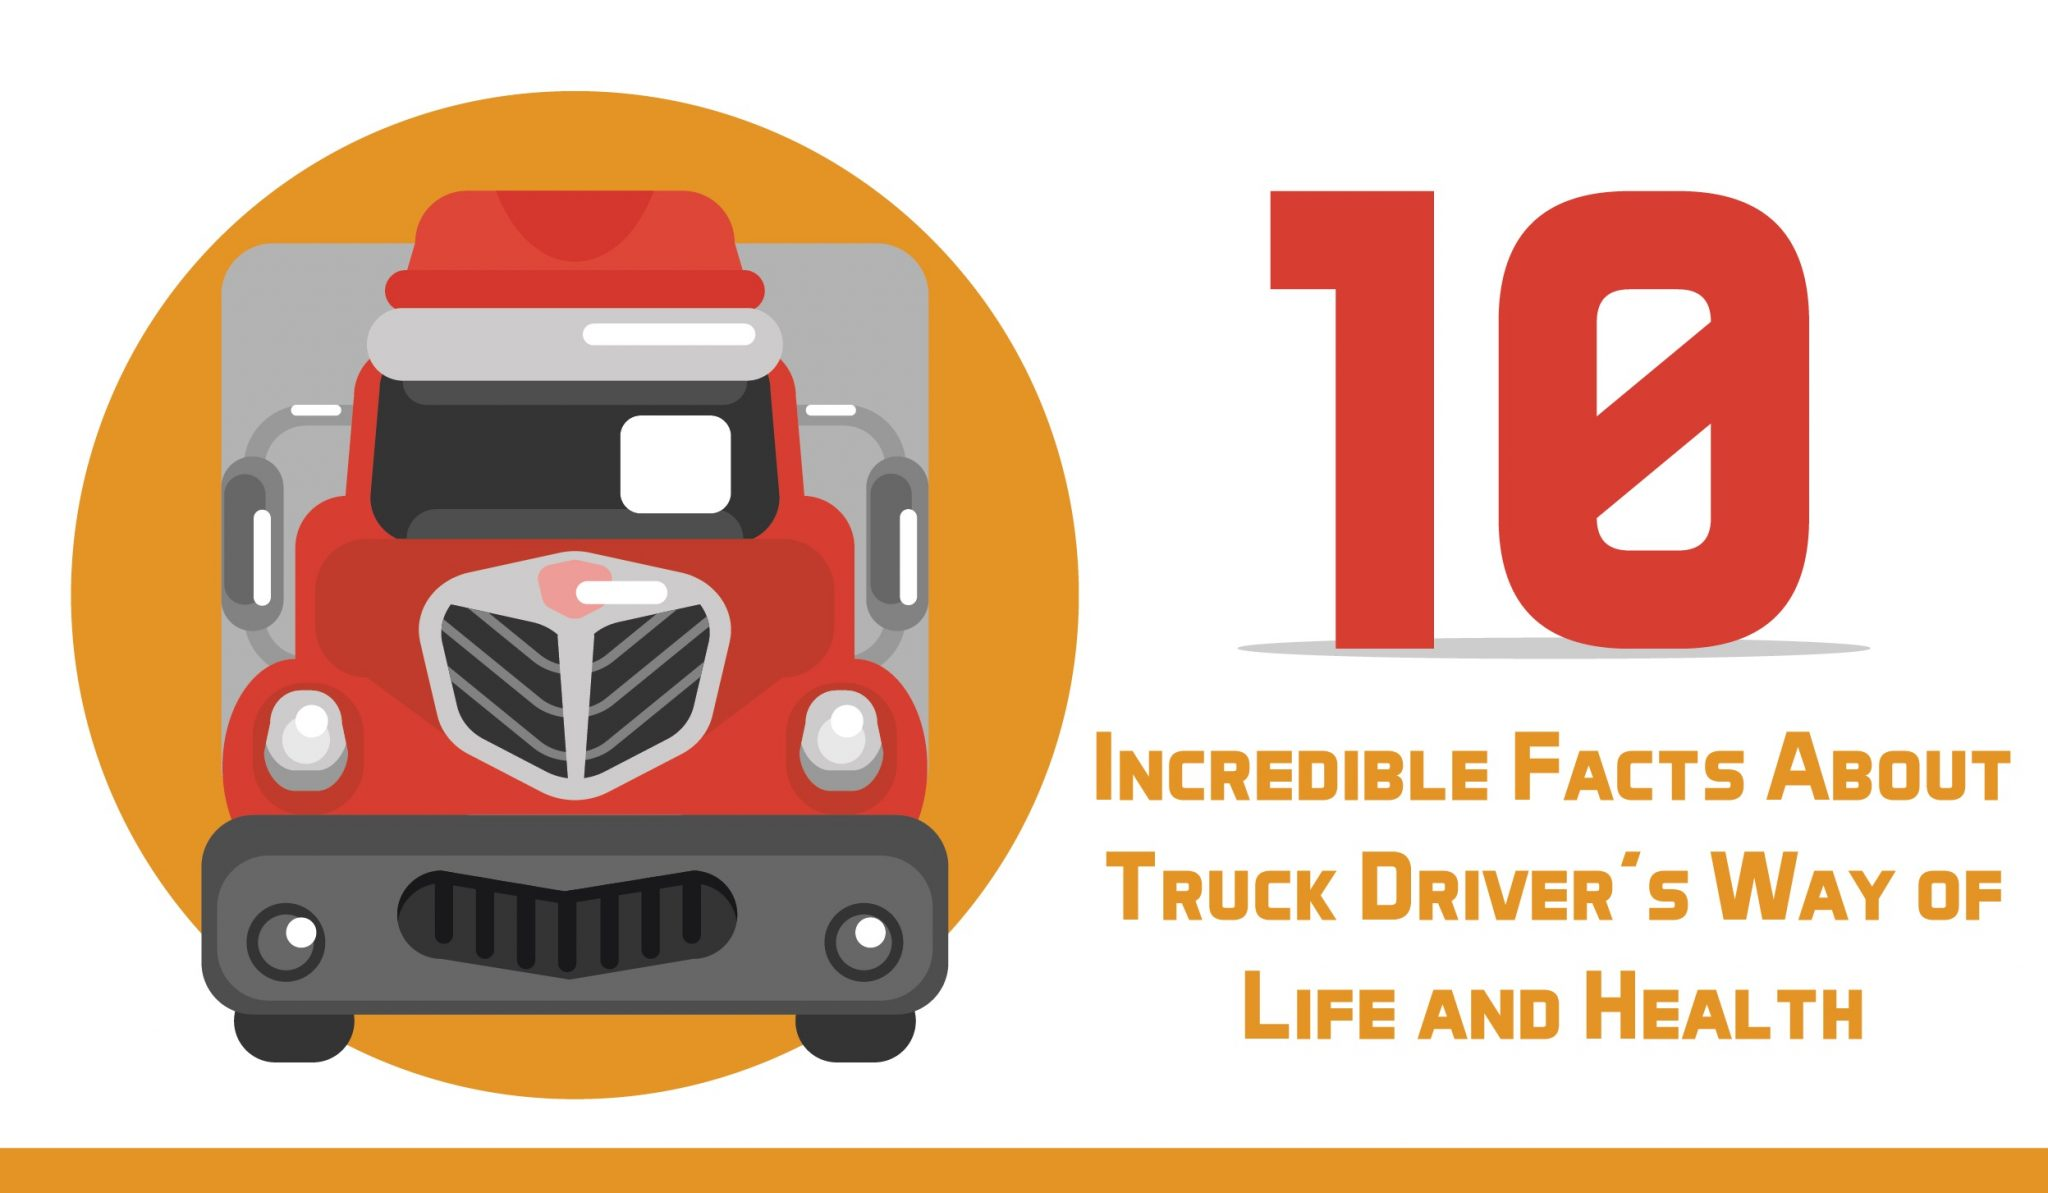 INFOGRAPHIC: 10 Incredible Facts About Truck Driver's Way of Life and Health